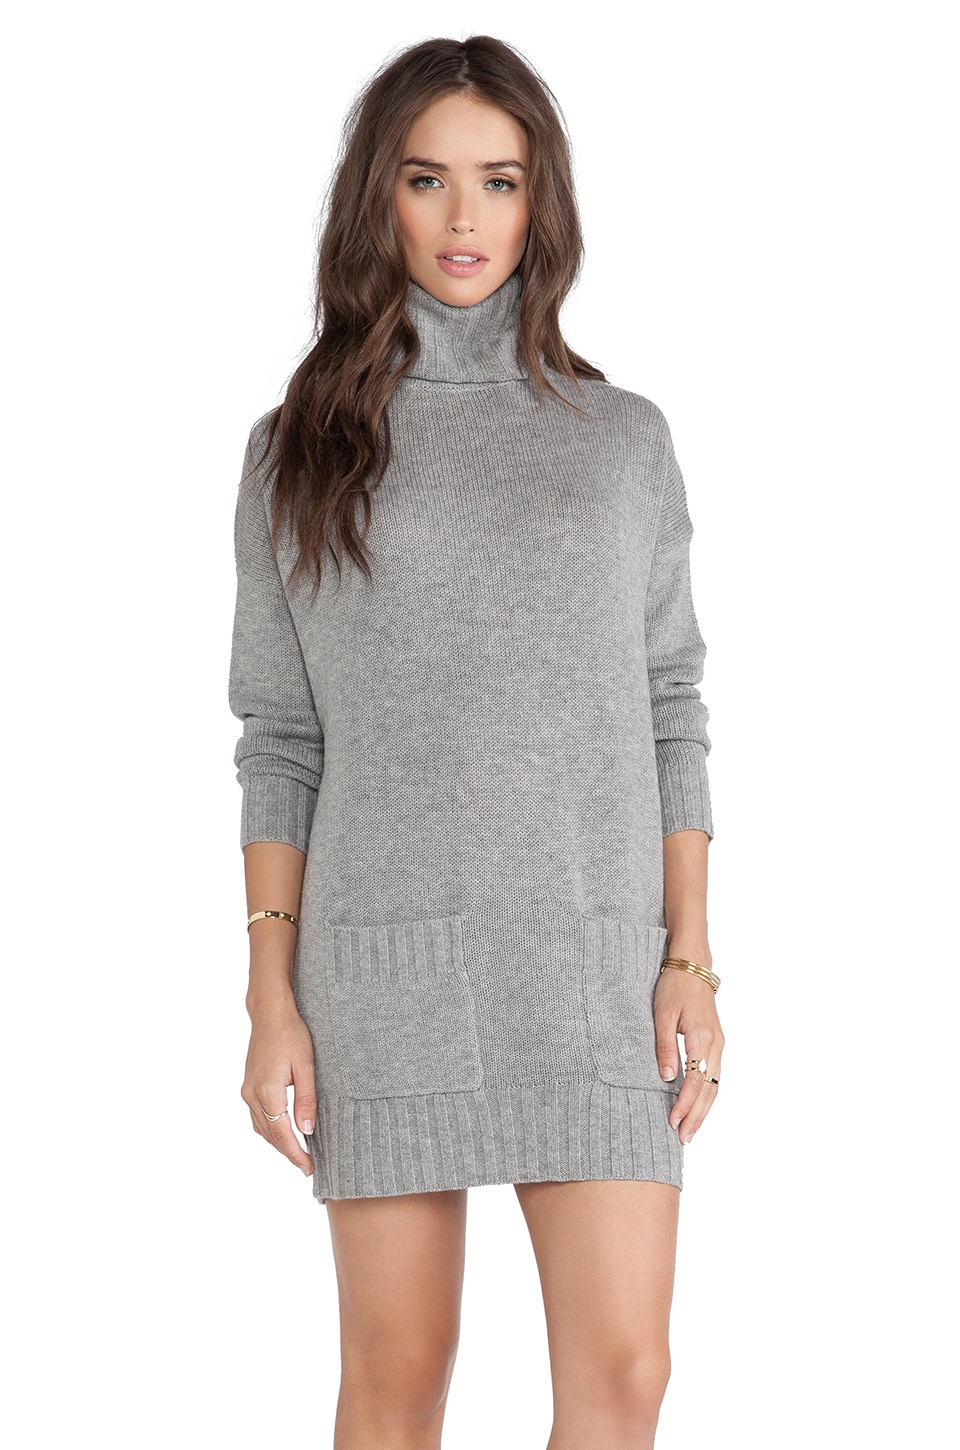 Joie Shera B Sweater Dress in Heather Grey